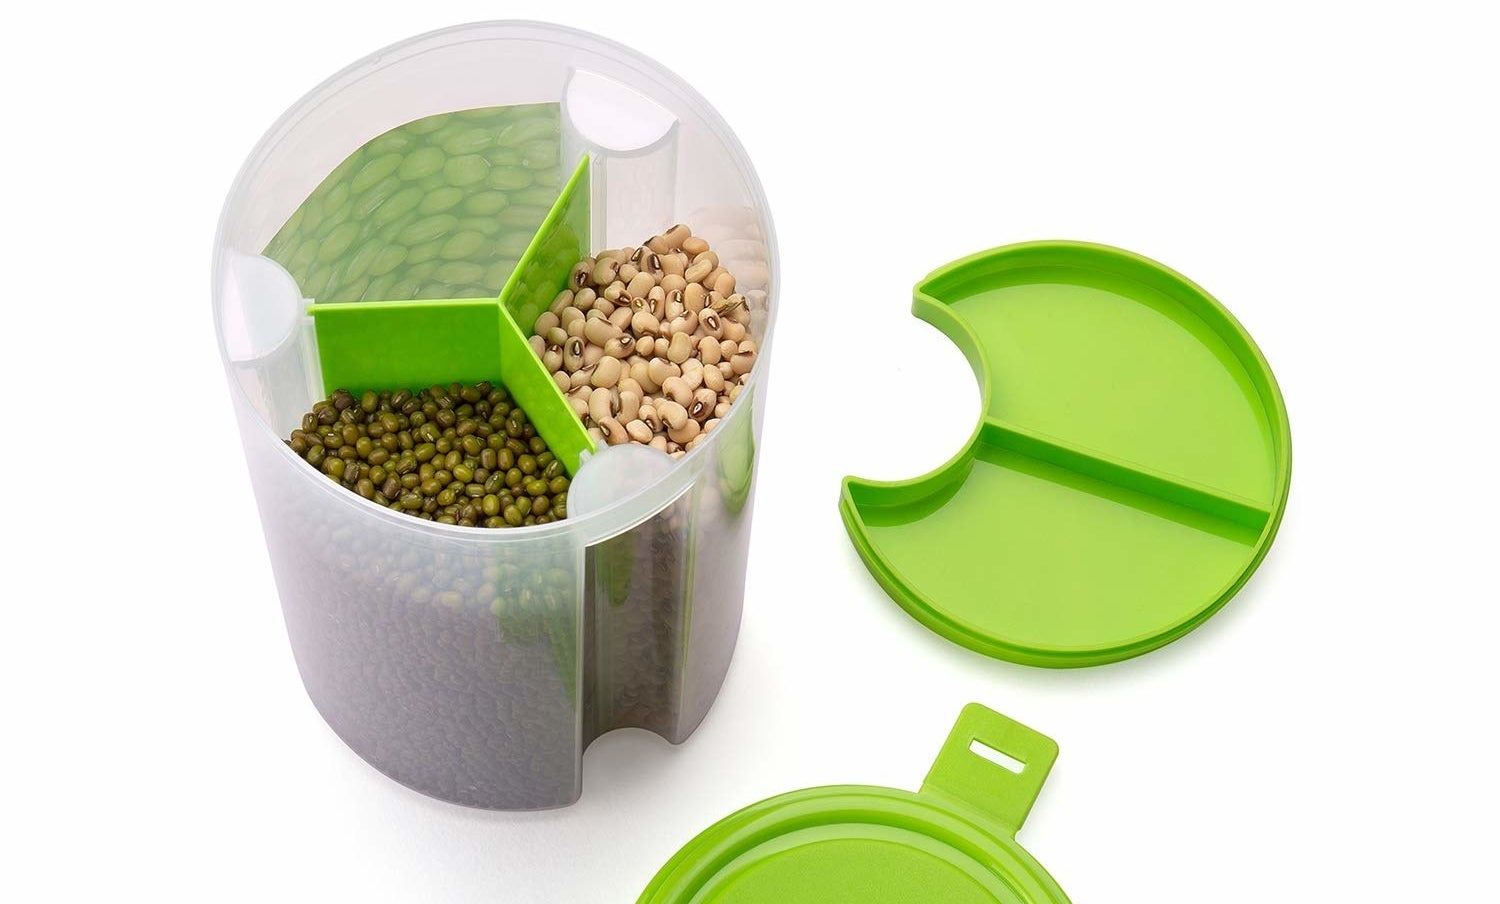 An open container with different food items in its different compartments.